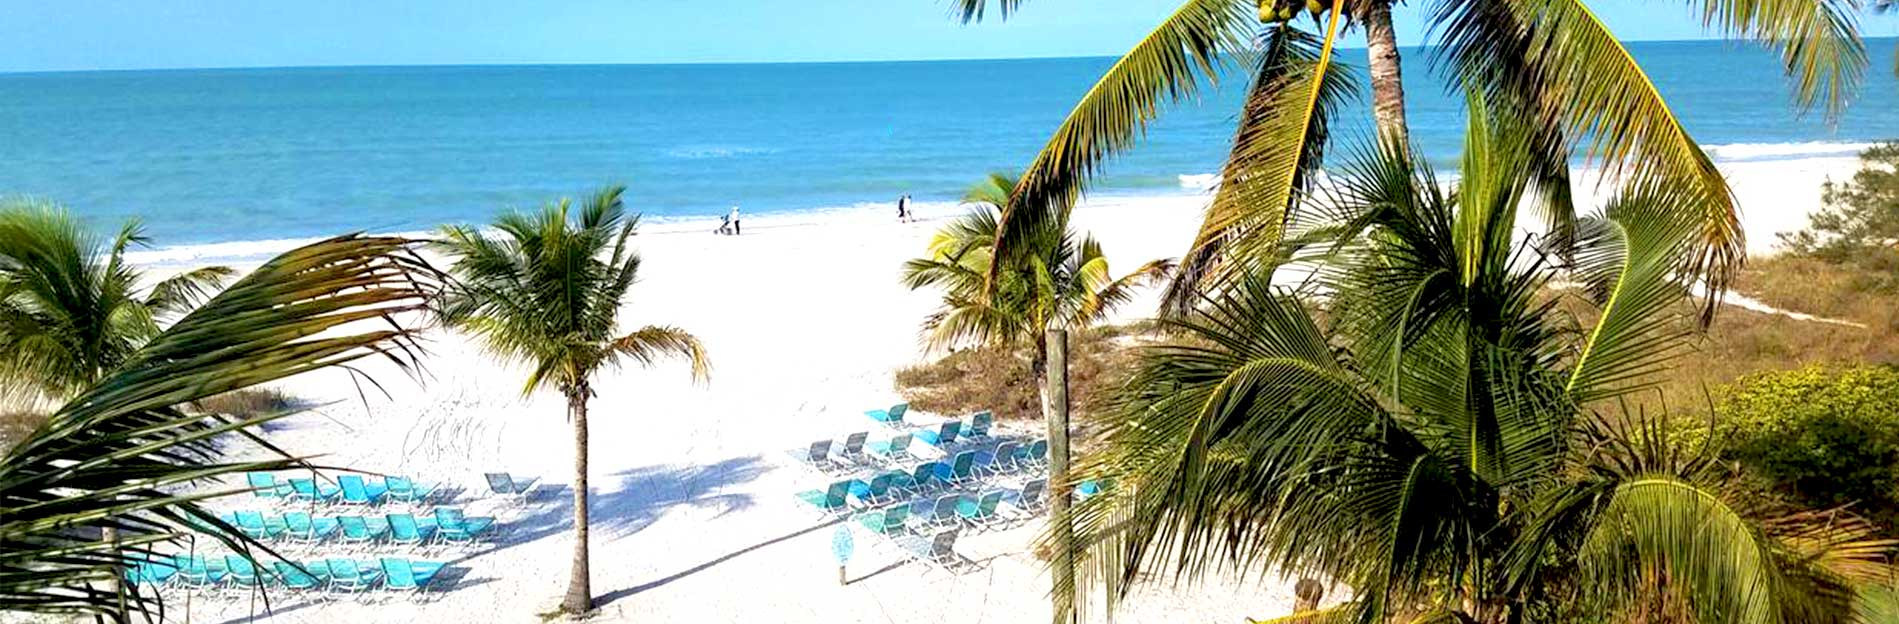 Anna Maria Island Vacation Resort